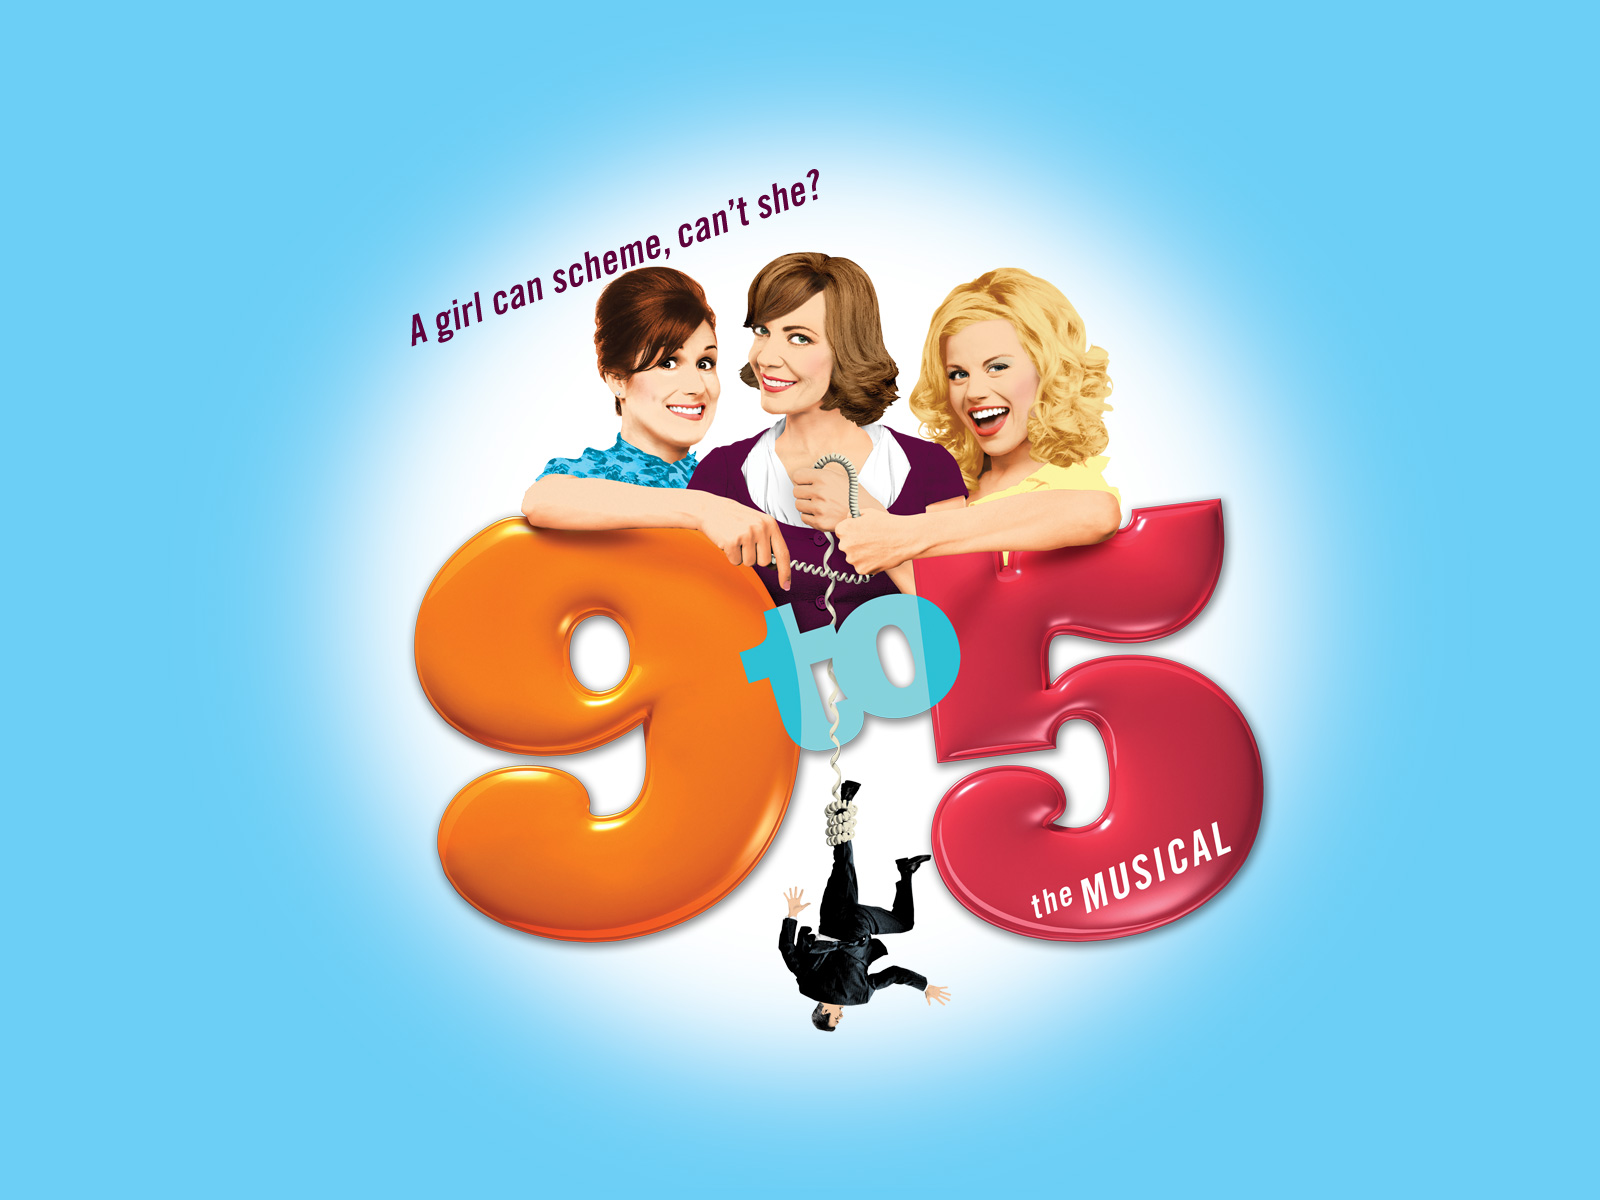 New 9 to 5 Website Launches; Promises to Deliver 'Dolly Parton to Fans'